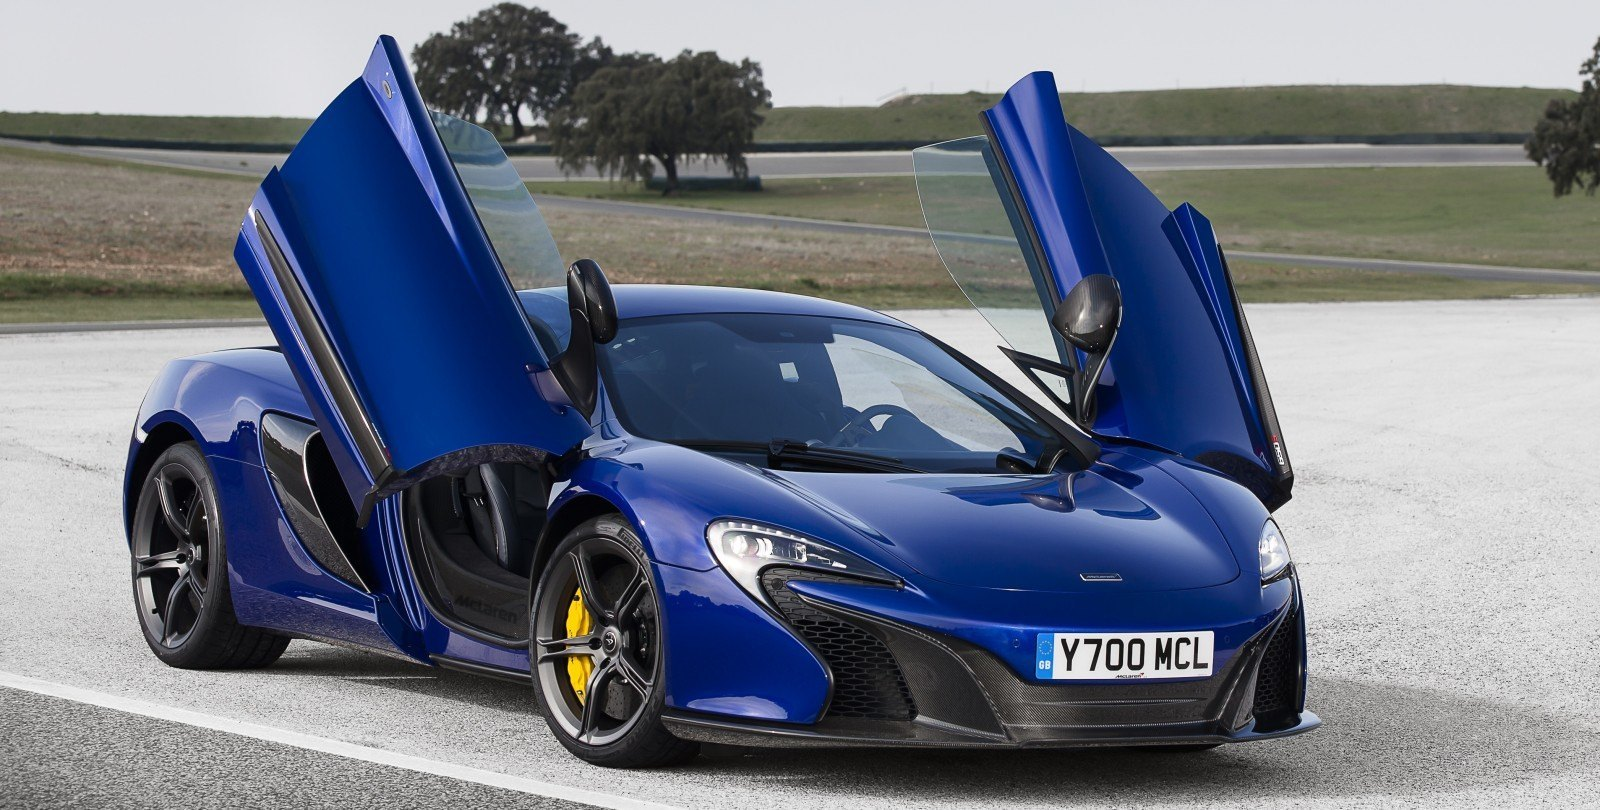 2014 McLaren 650S Spider - Buyers Guide + Color Visualizer ...